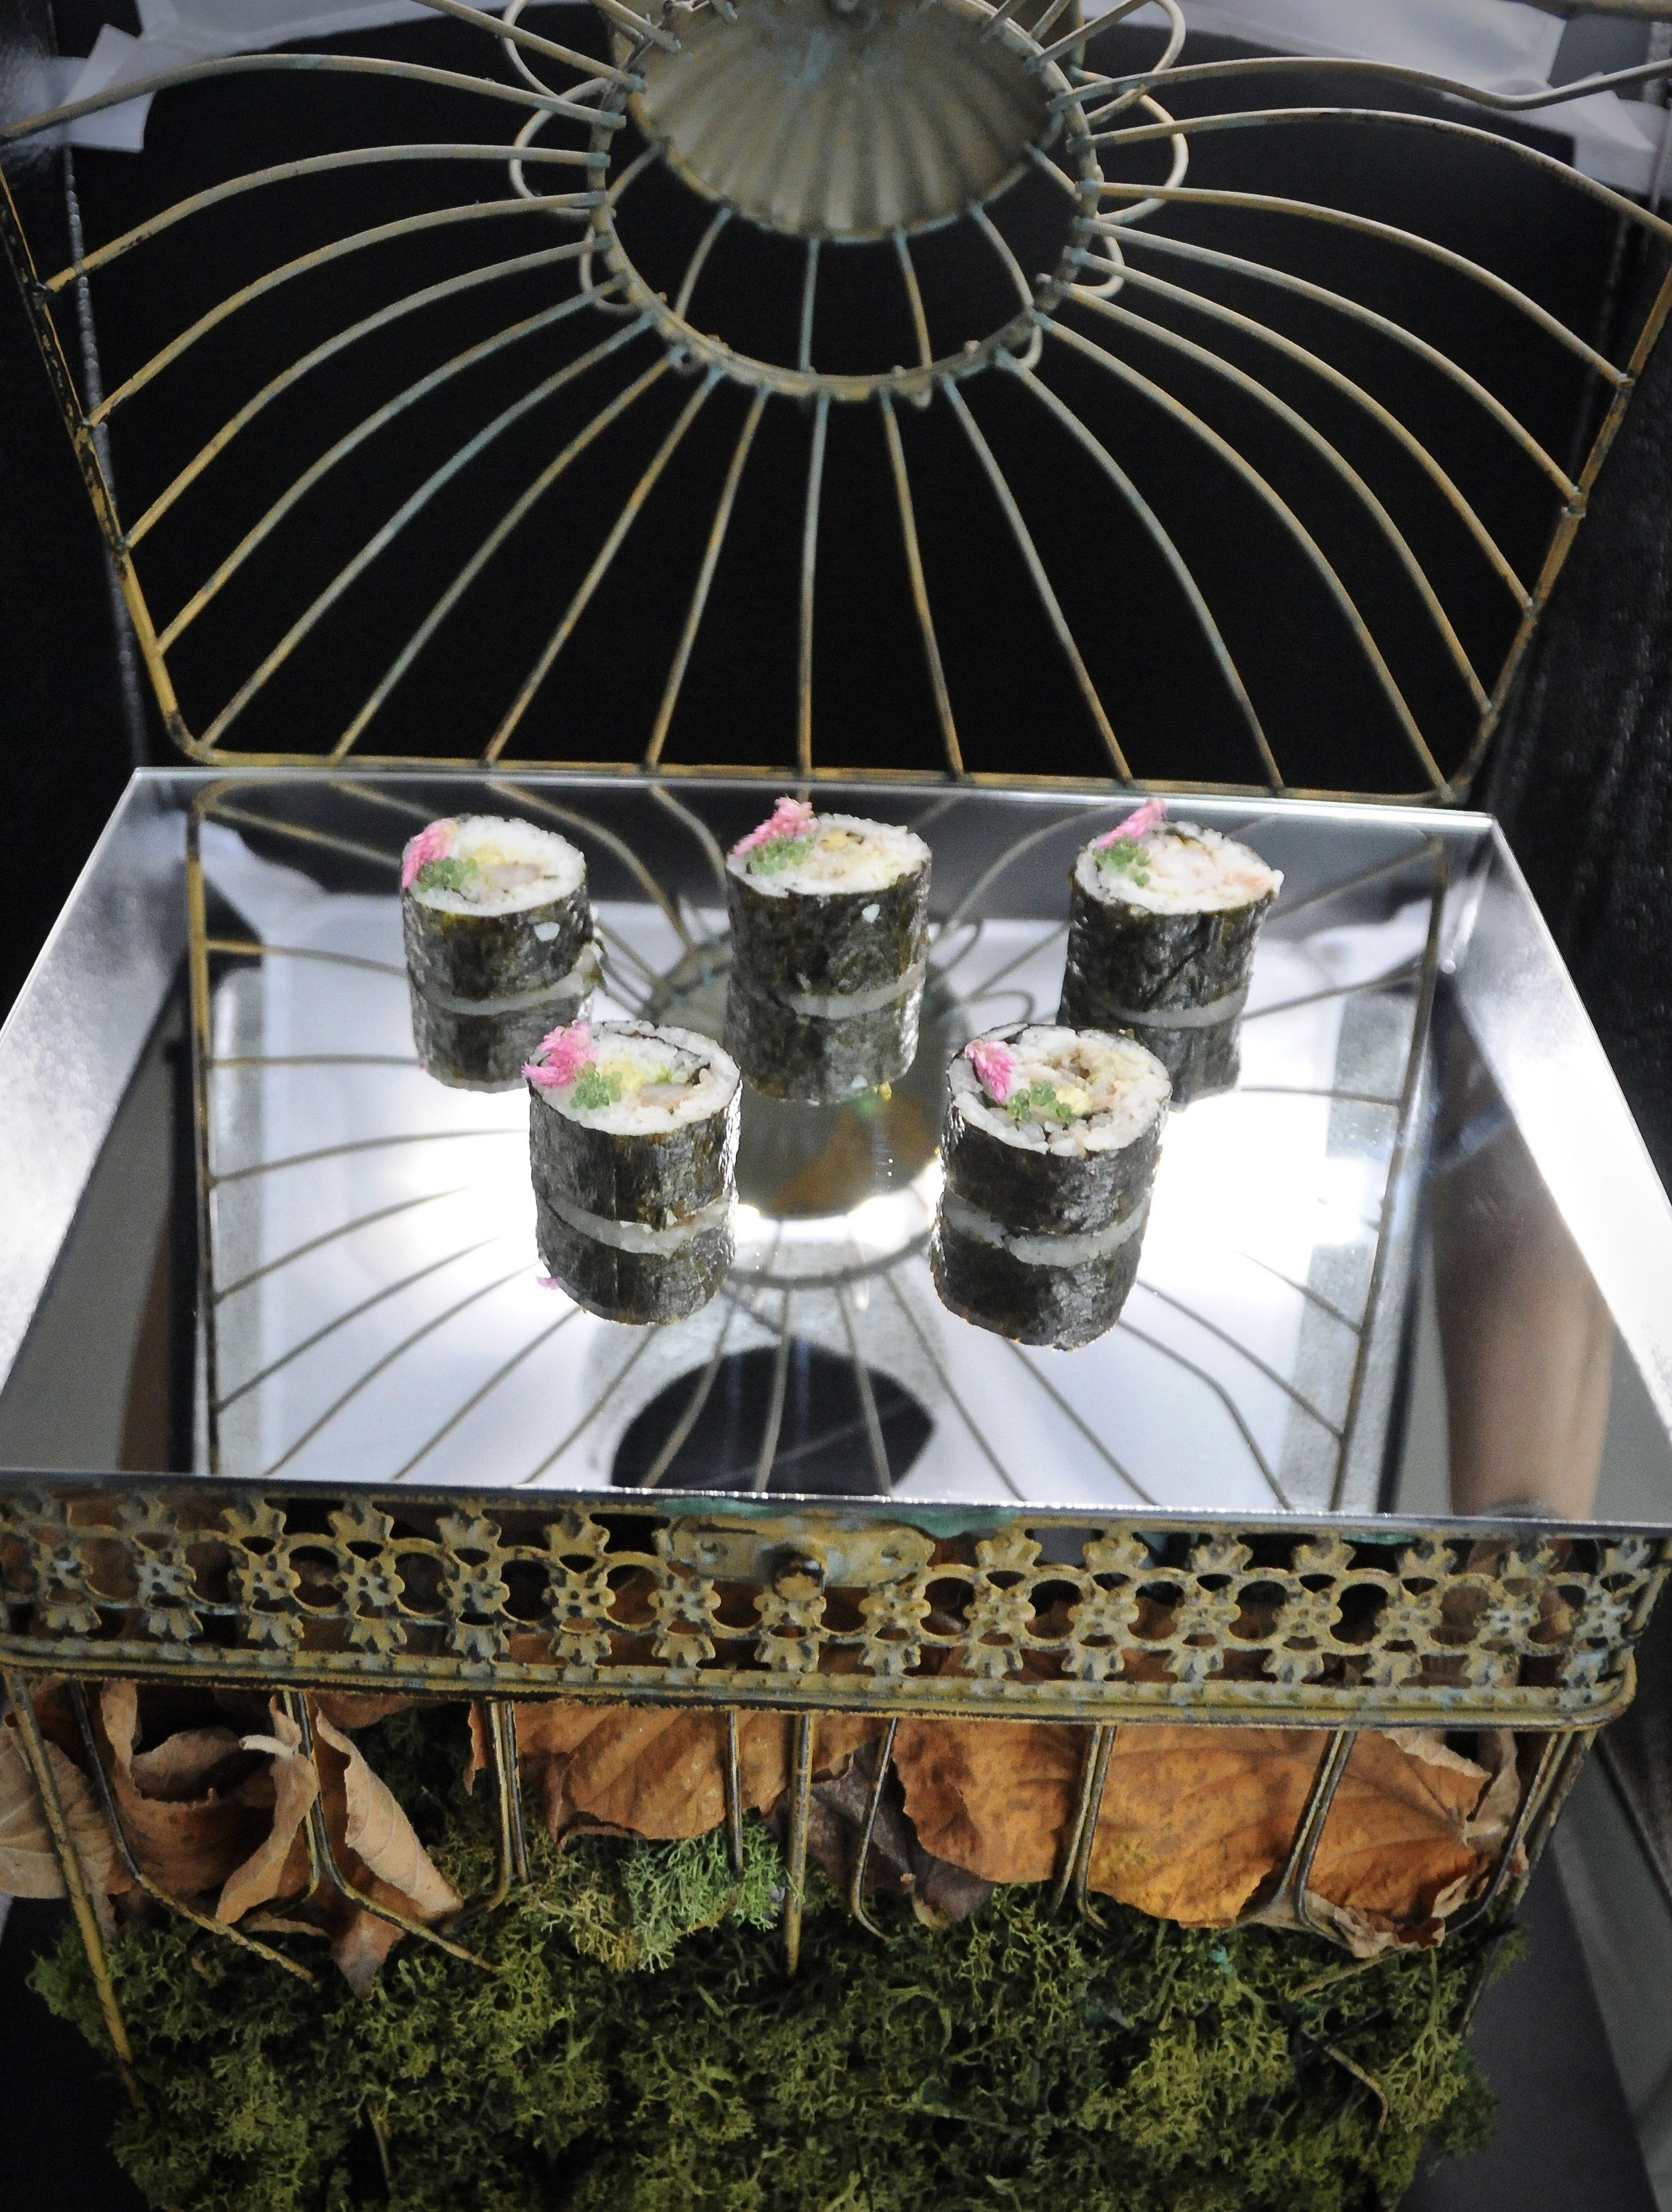 Sushi on a mirror on a bird cage